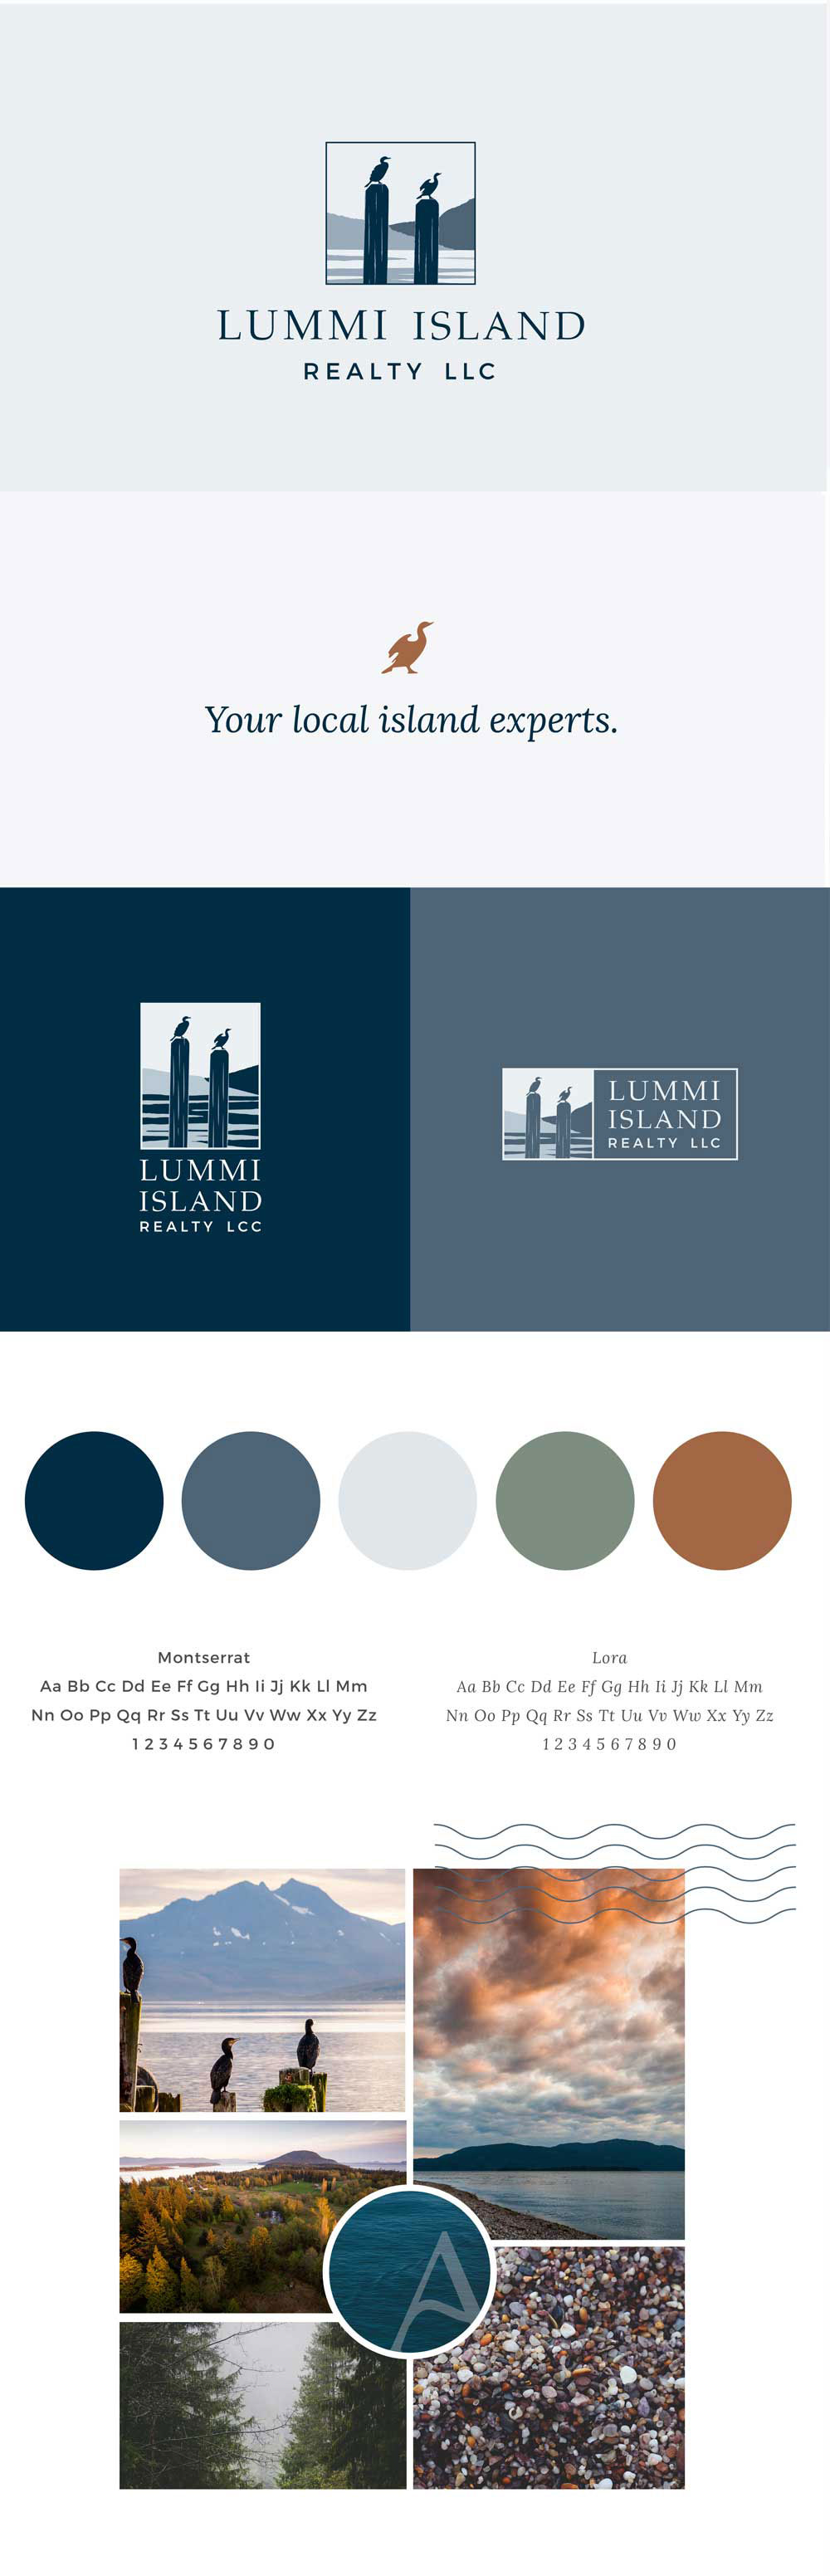 Lummi Island Realty Brand Identity By The Look & The Feel